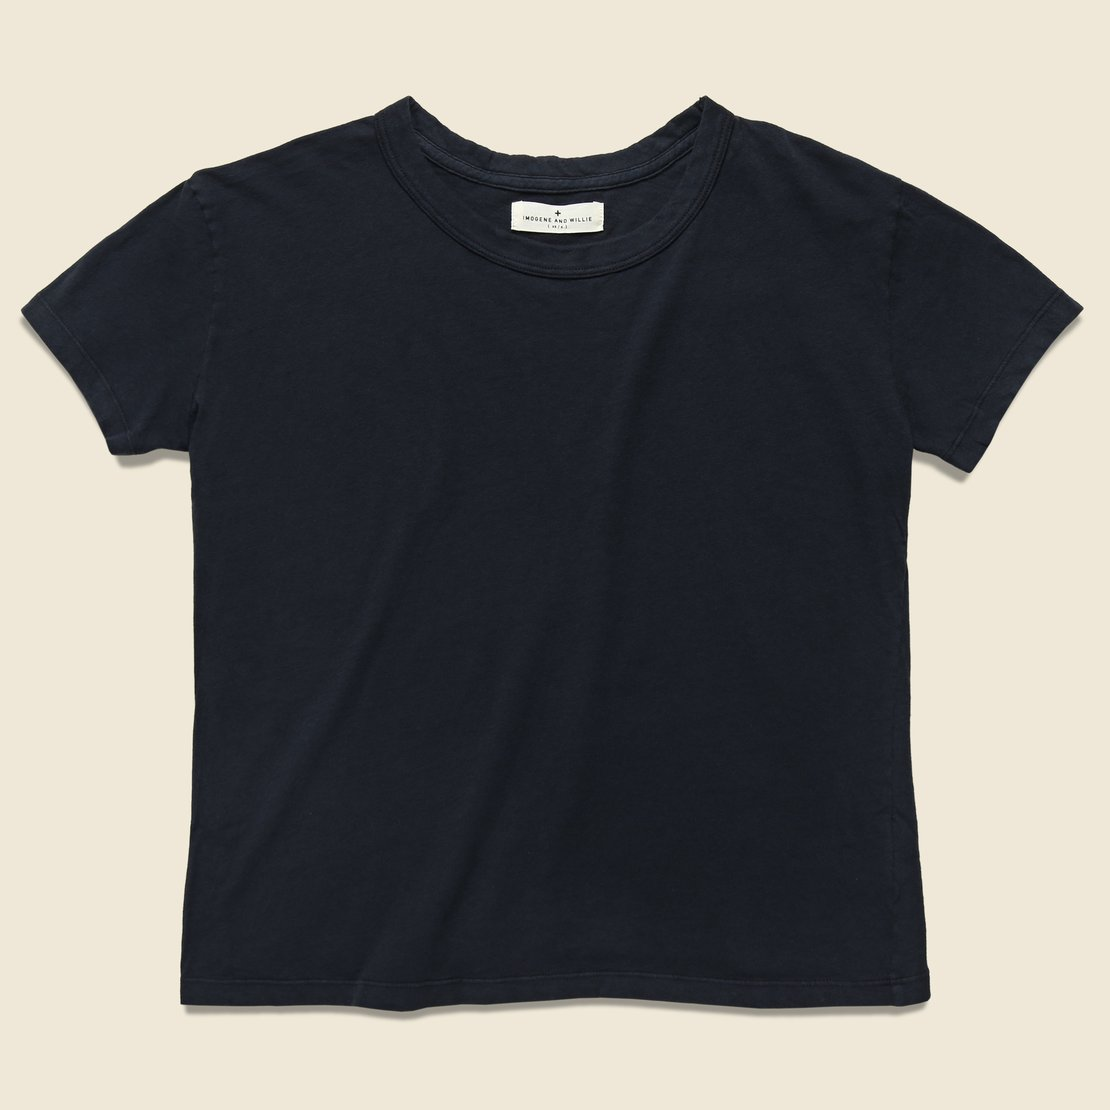 Imogene + Willie Drop Tee - Faded Black